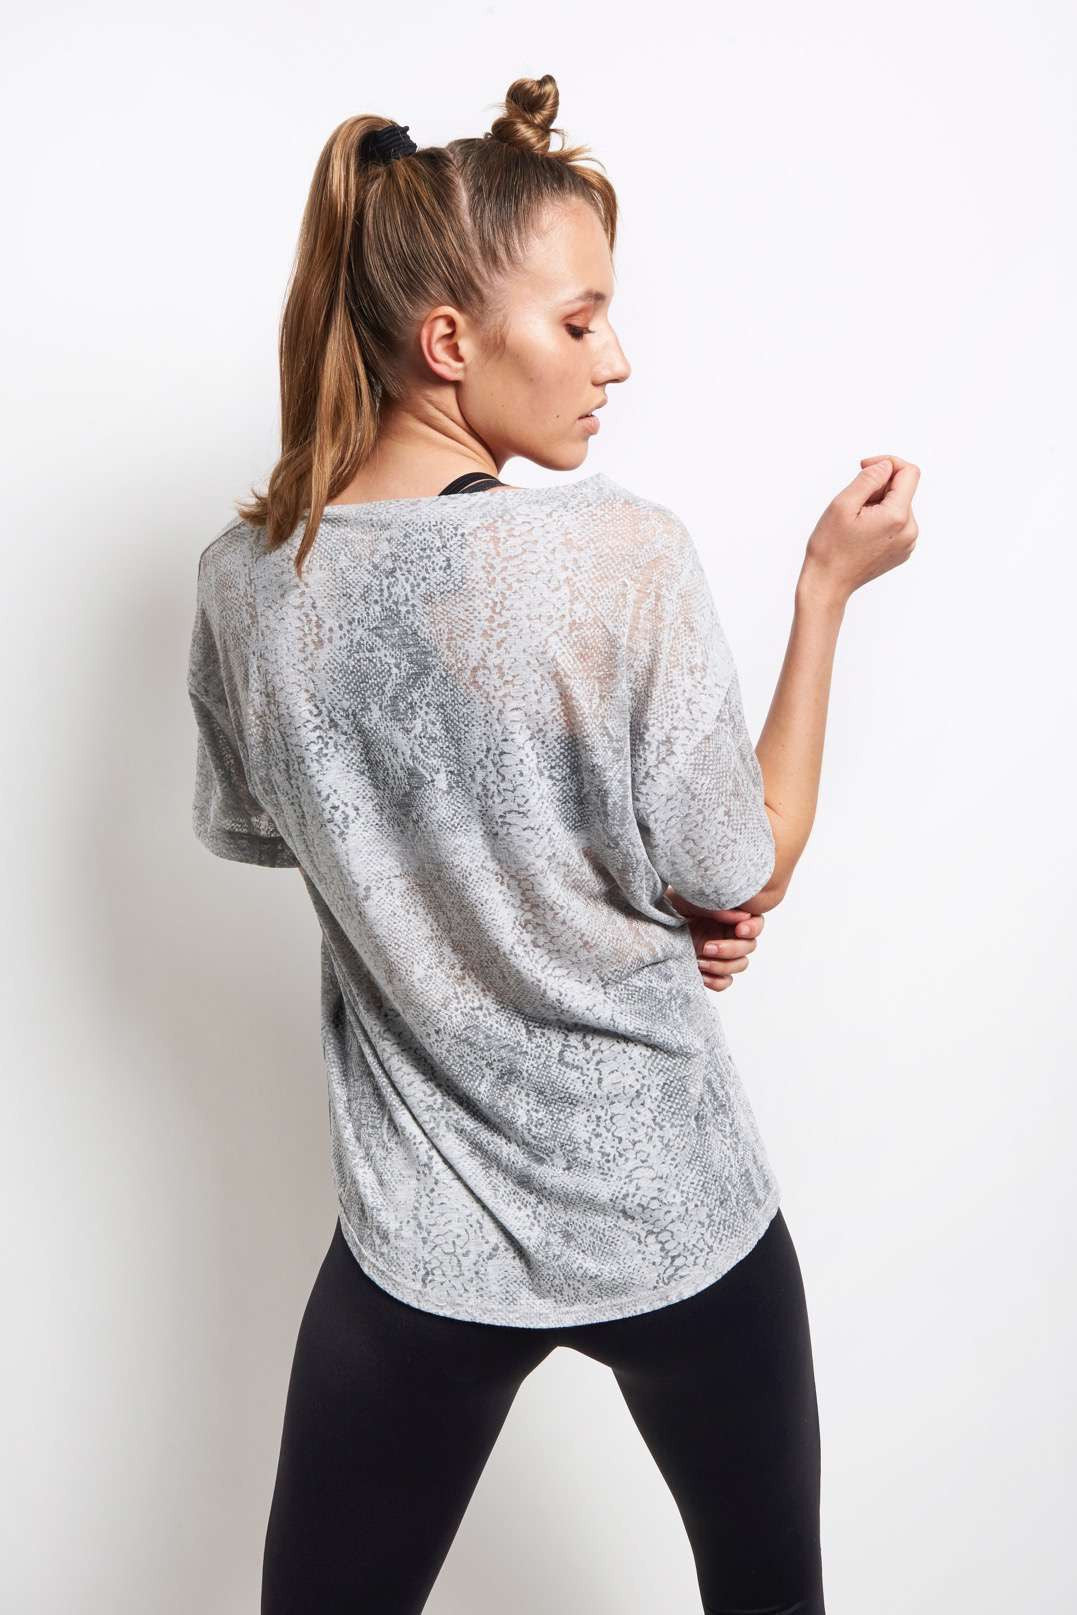 Blue Life Fit Side Slit Best Bum Tee - Grey Snake image 2 - The Sports Edit